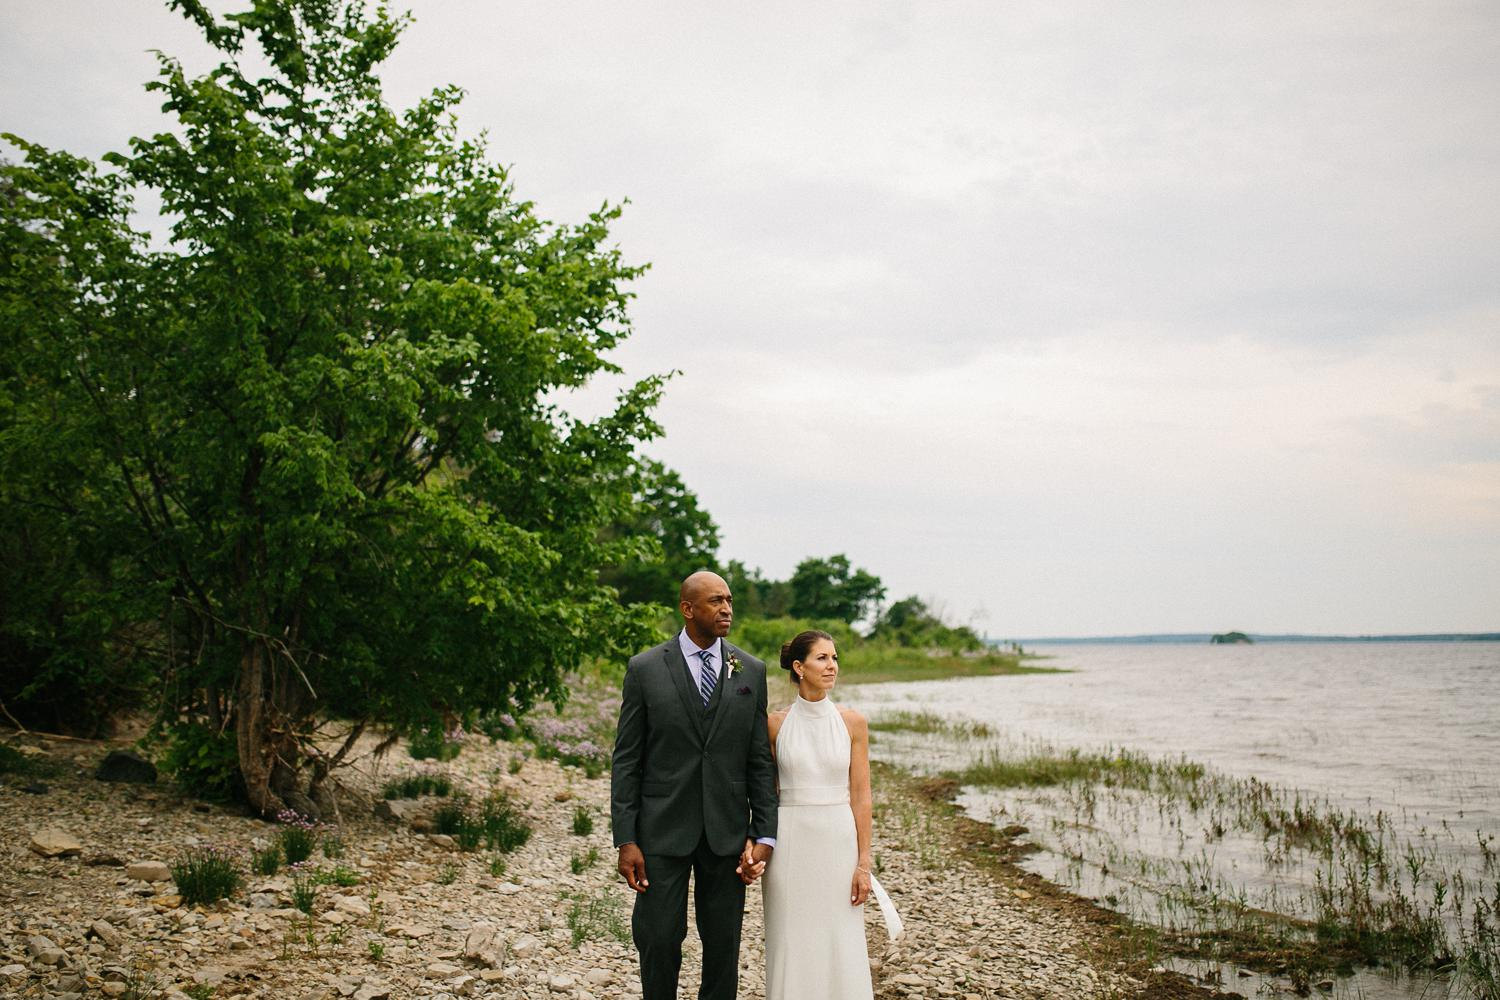 ottawa river small intimate wedding-153.jpg